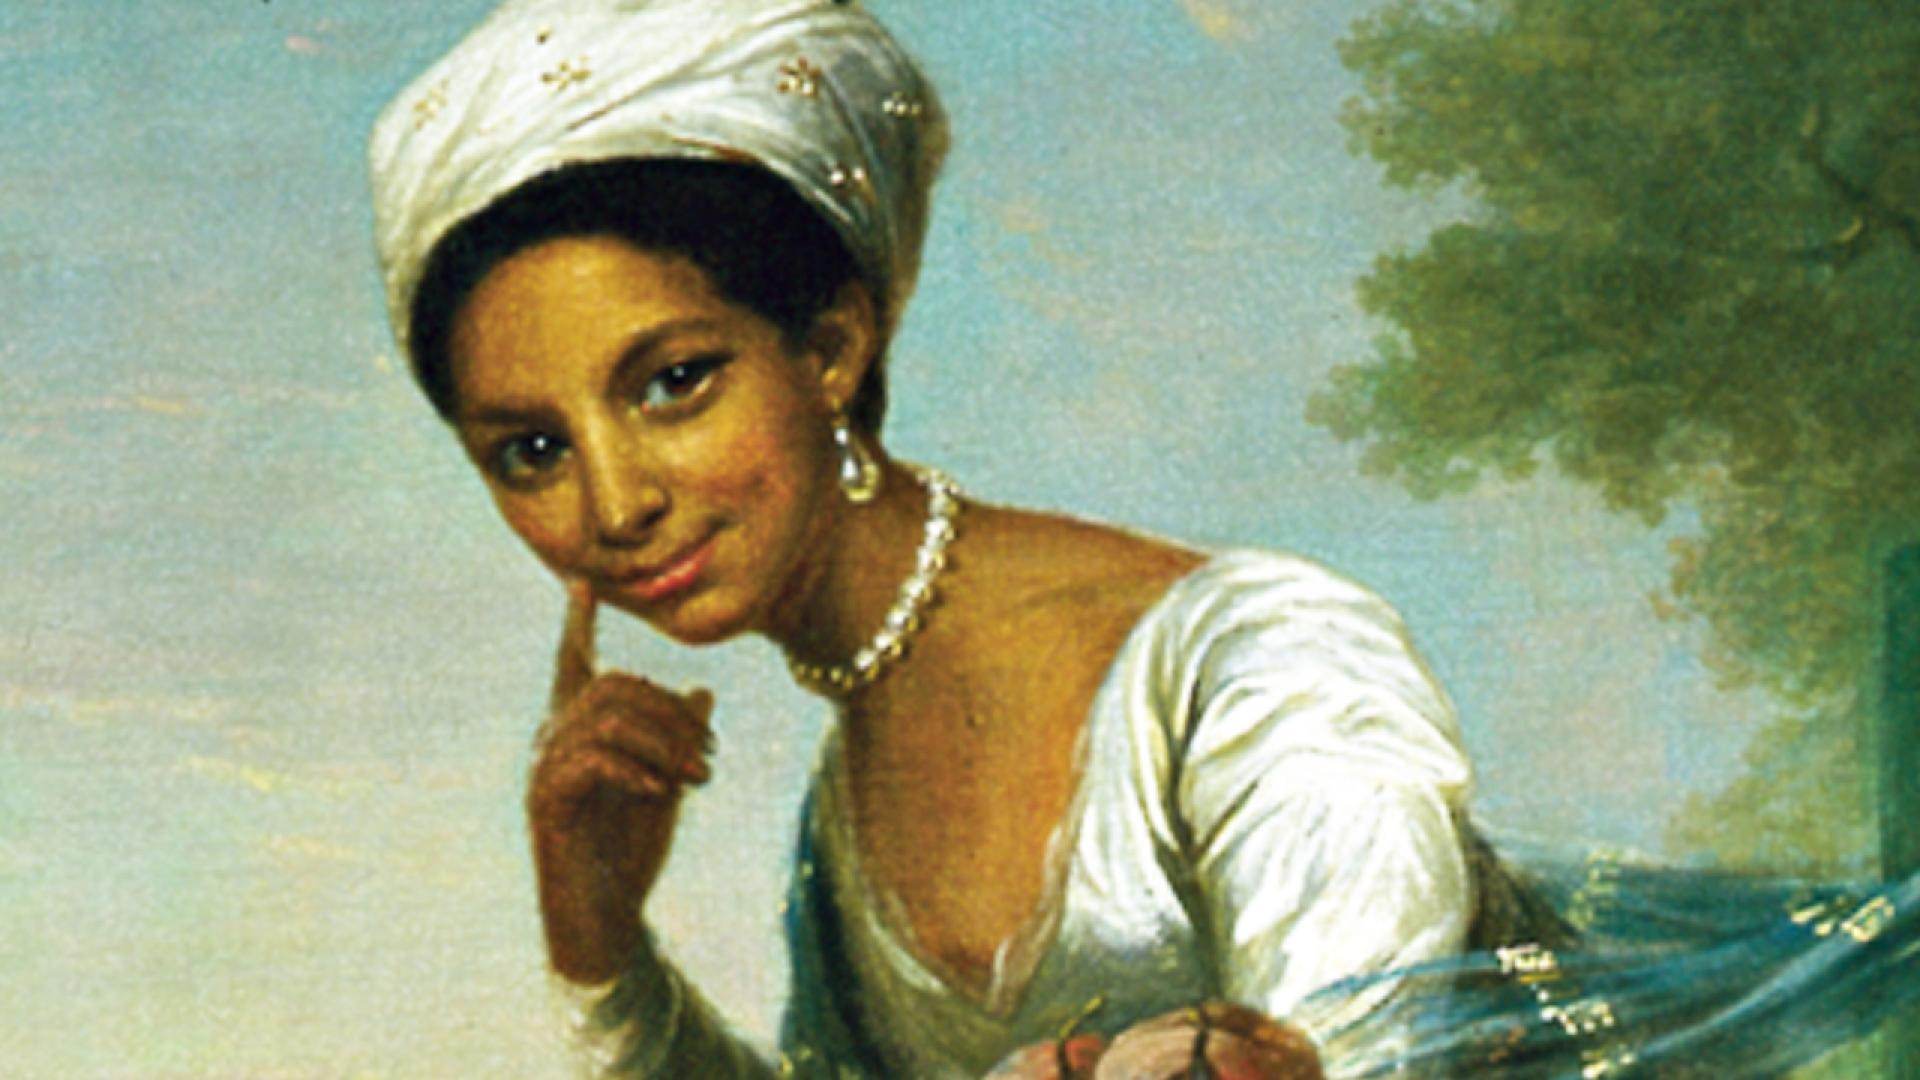 The story of Dido Elizabeth Belle, the illegitimate daughter of a Navy captain and an enslaved woman of African origins, is just one of many that appears in the ancestry project.